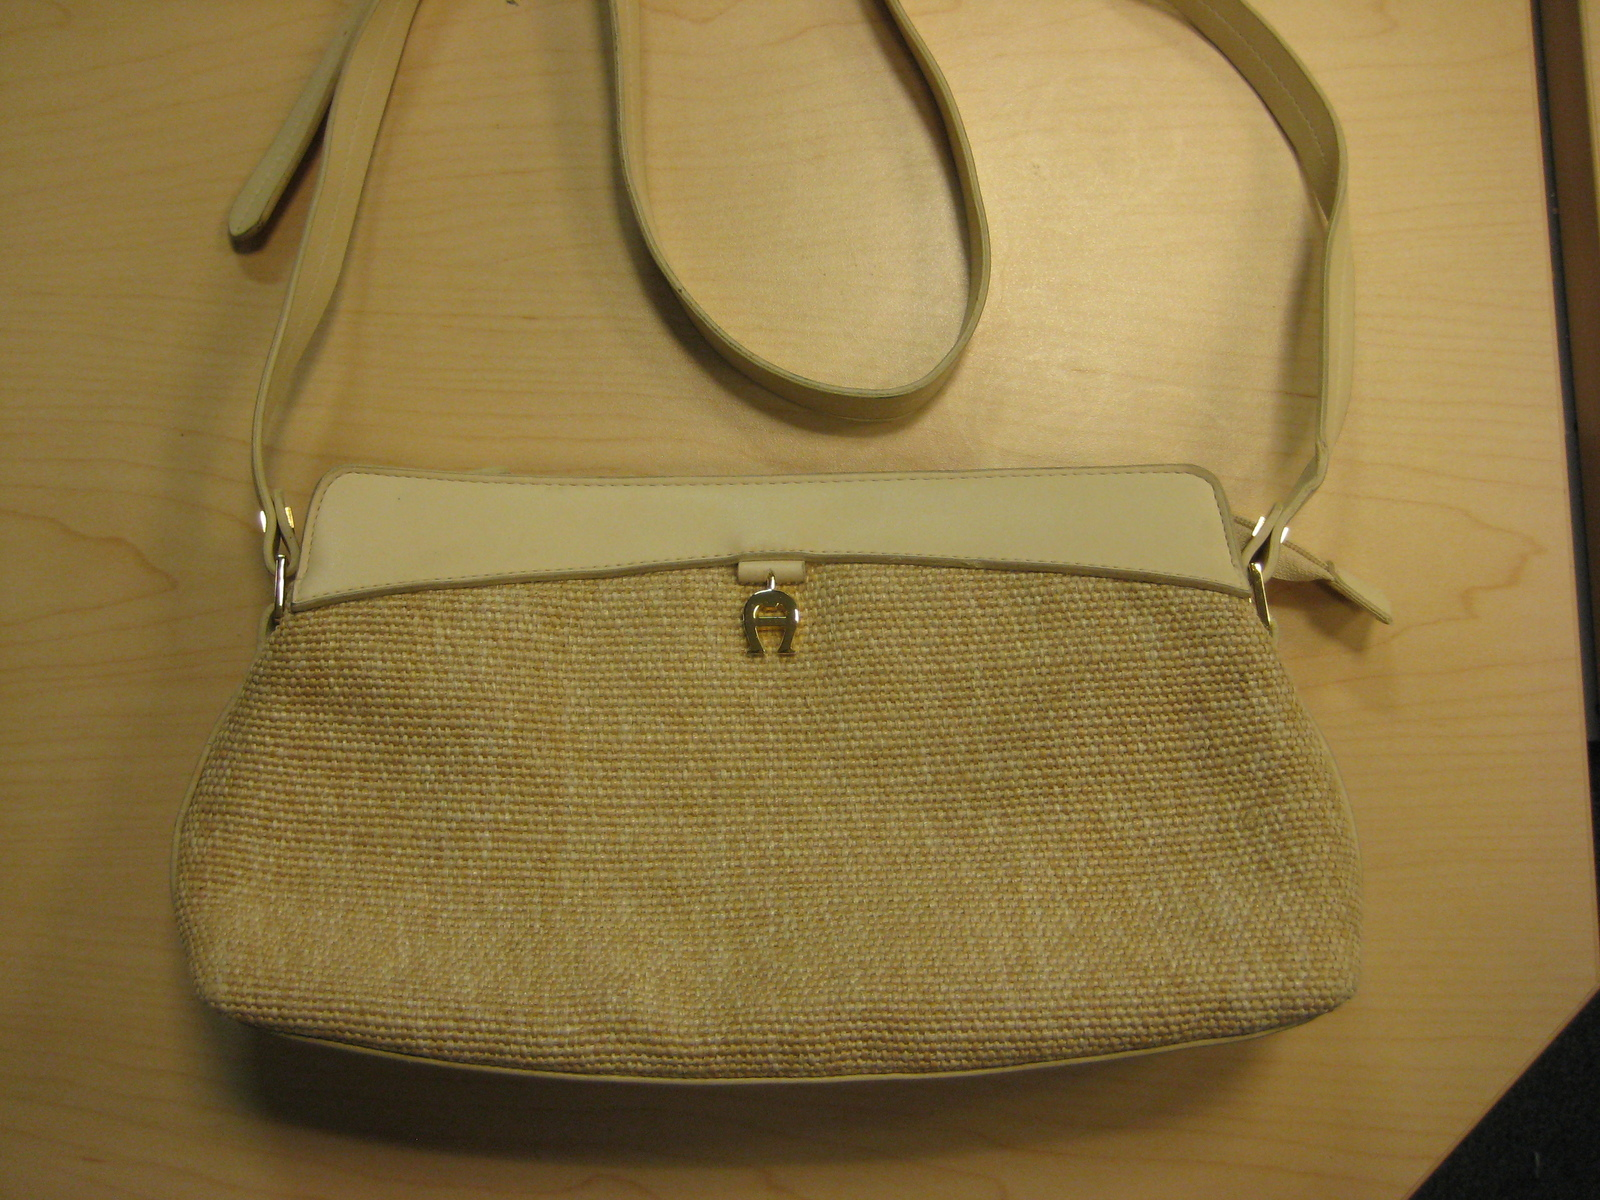 296f802088 Etienne Aigner Handbag and 40 similar items. 120